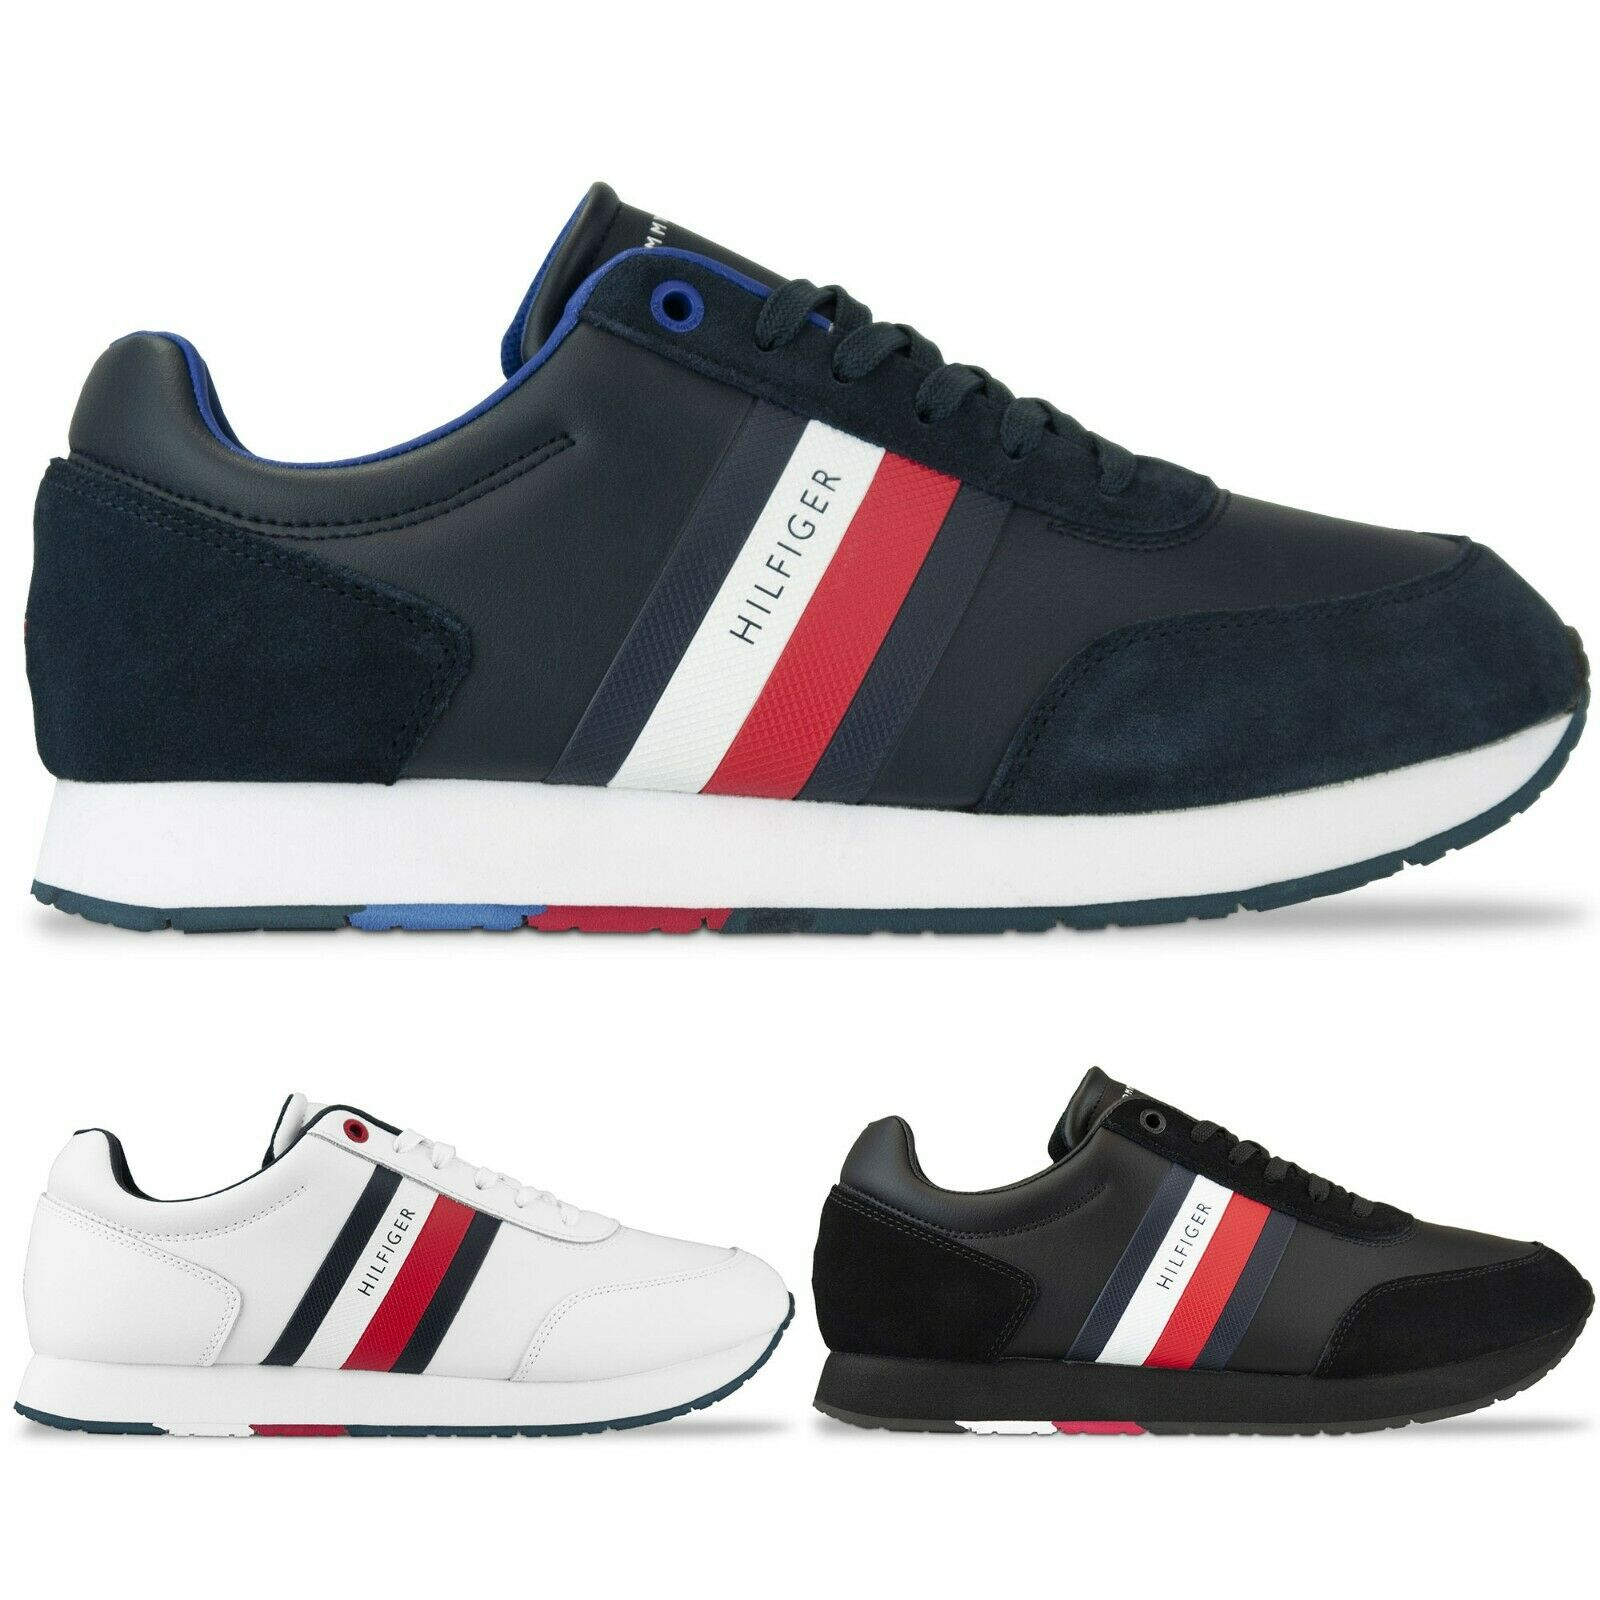 Tommy Hilfiger Trainers for sale online